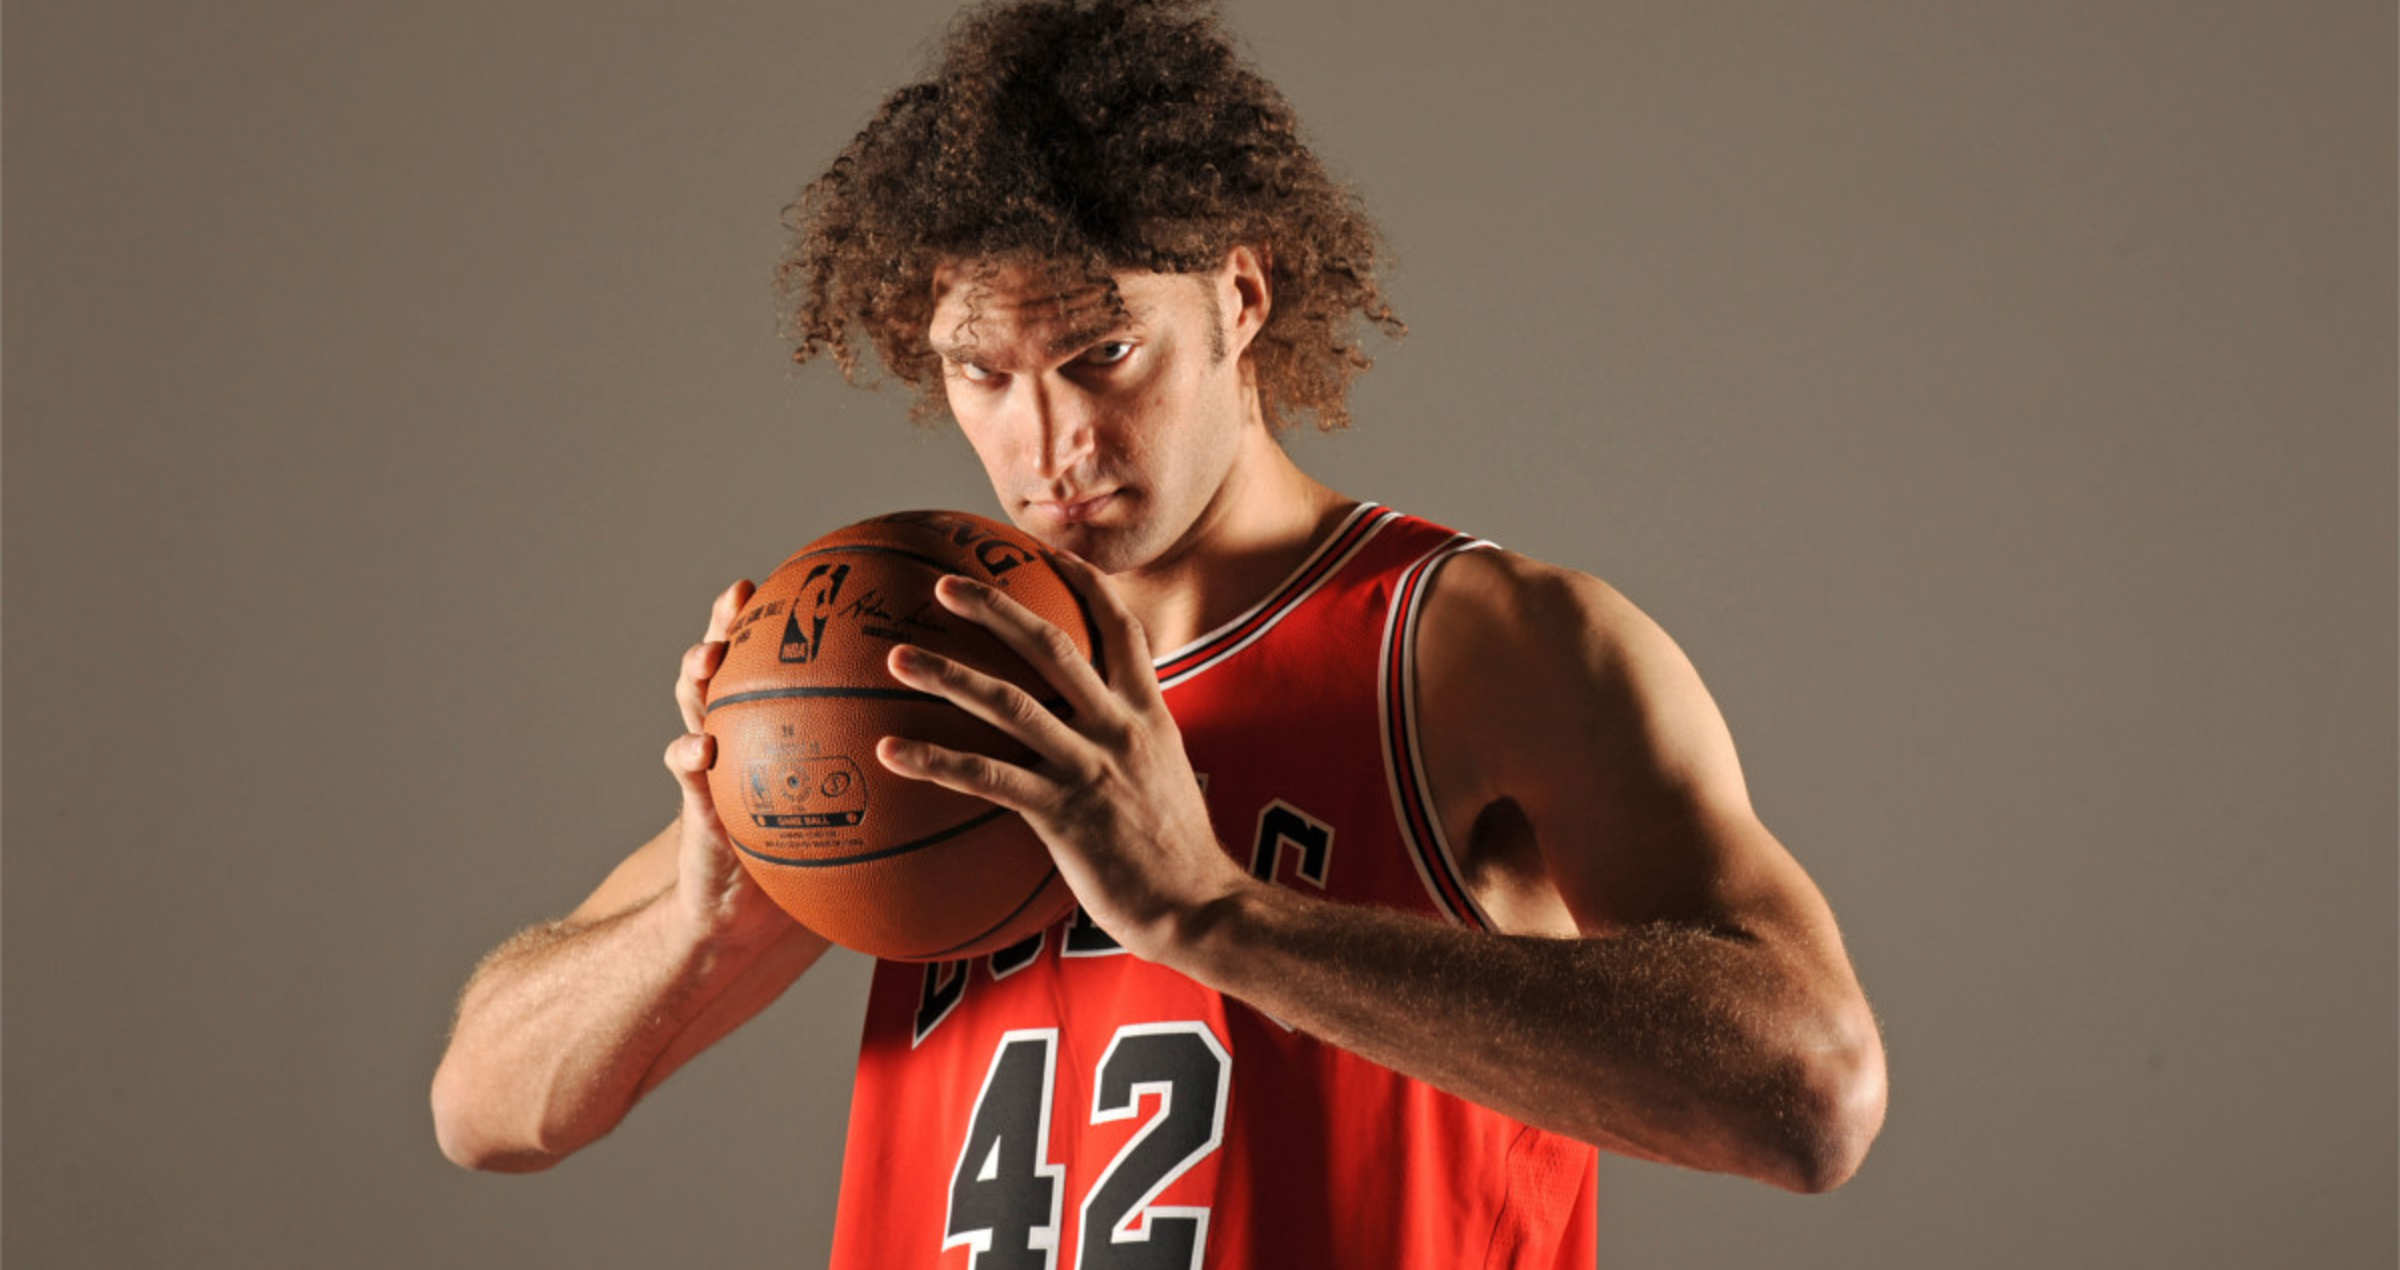 Robin Lopez on Chicago Bull's Media Day posing with a basketball.